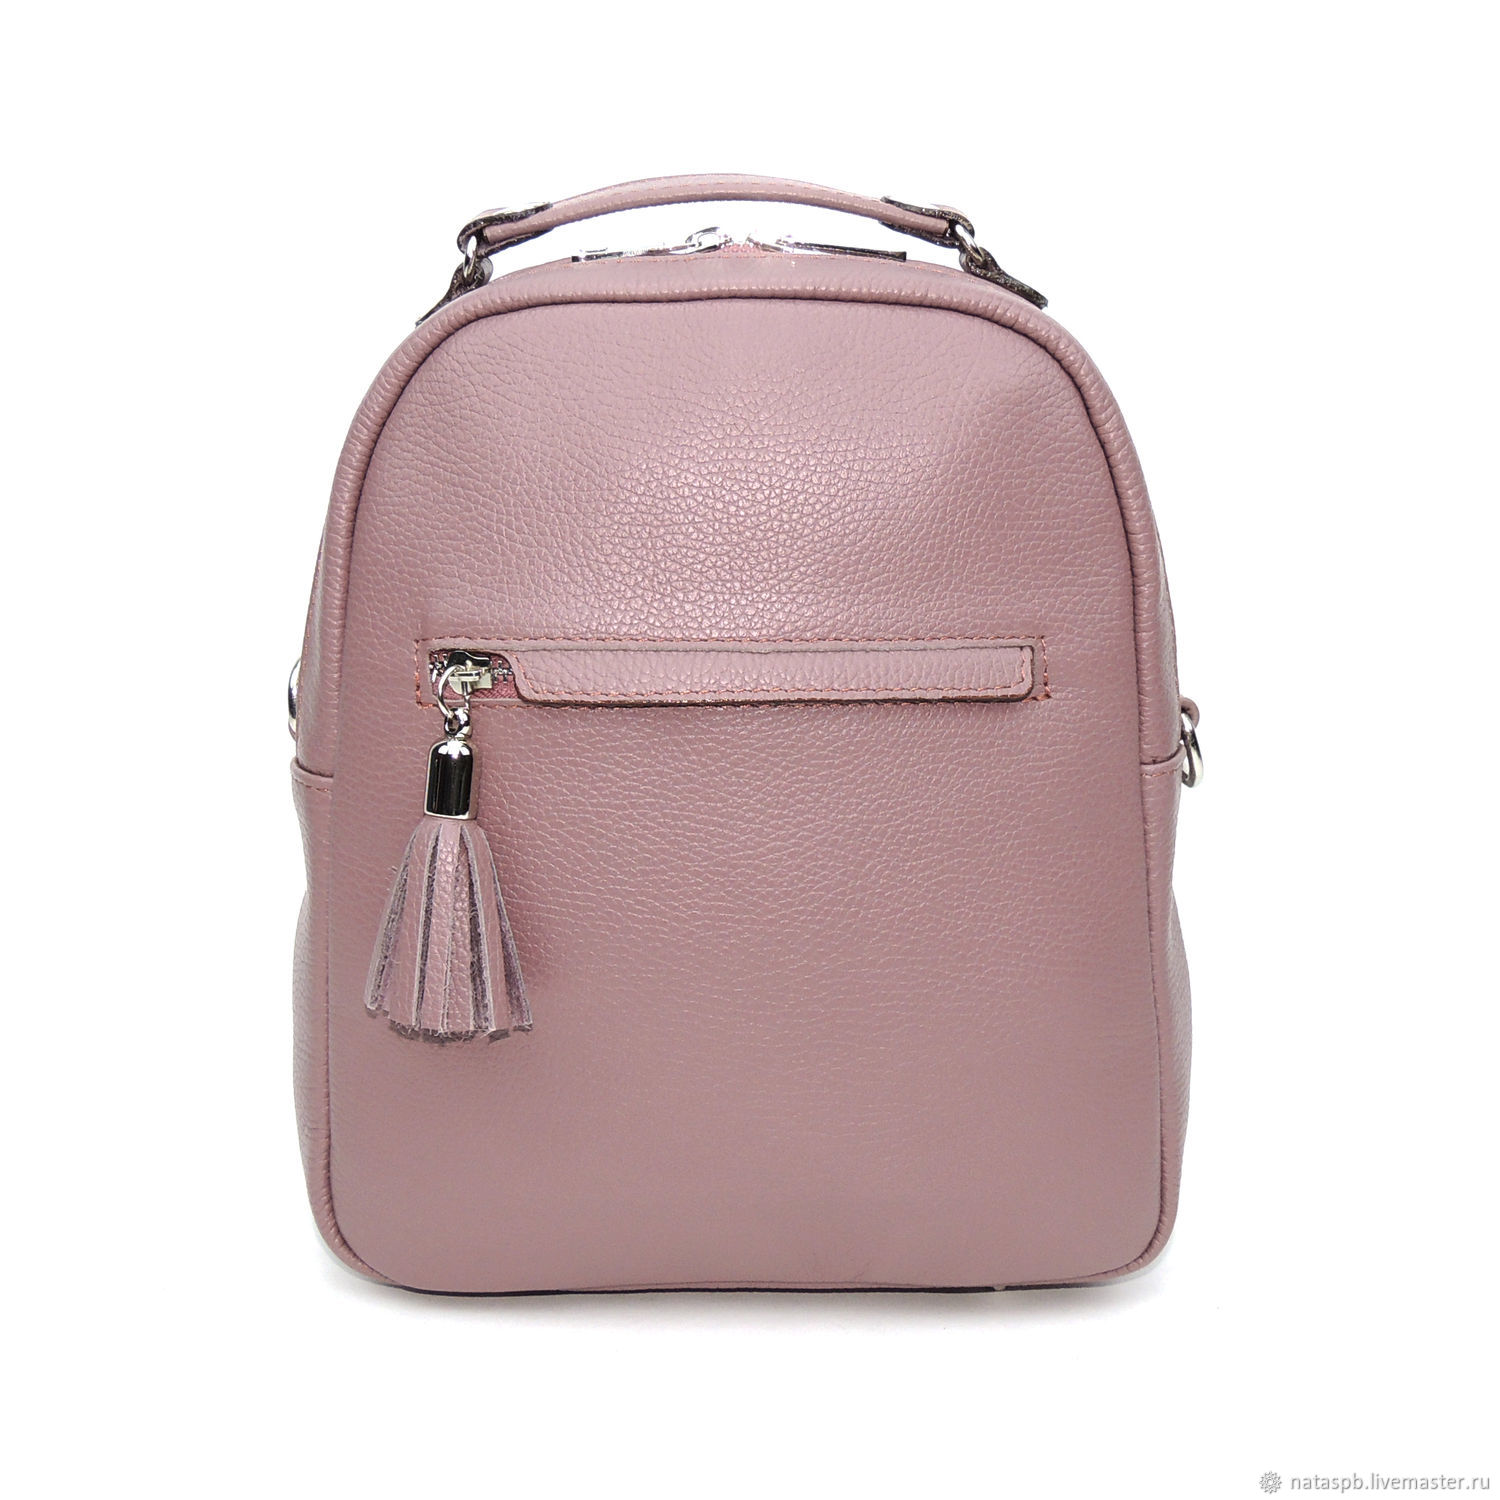 03ffaa9dea04 Backpack women s leather purple Ein – shop online on Livemaster with ...